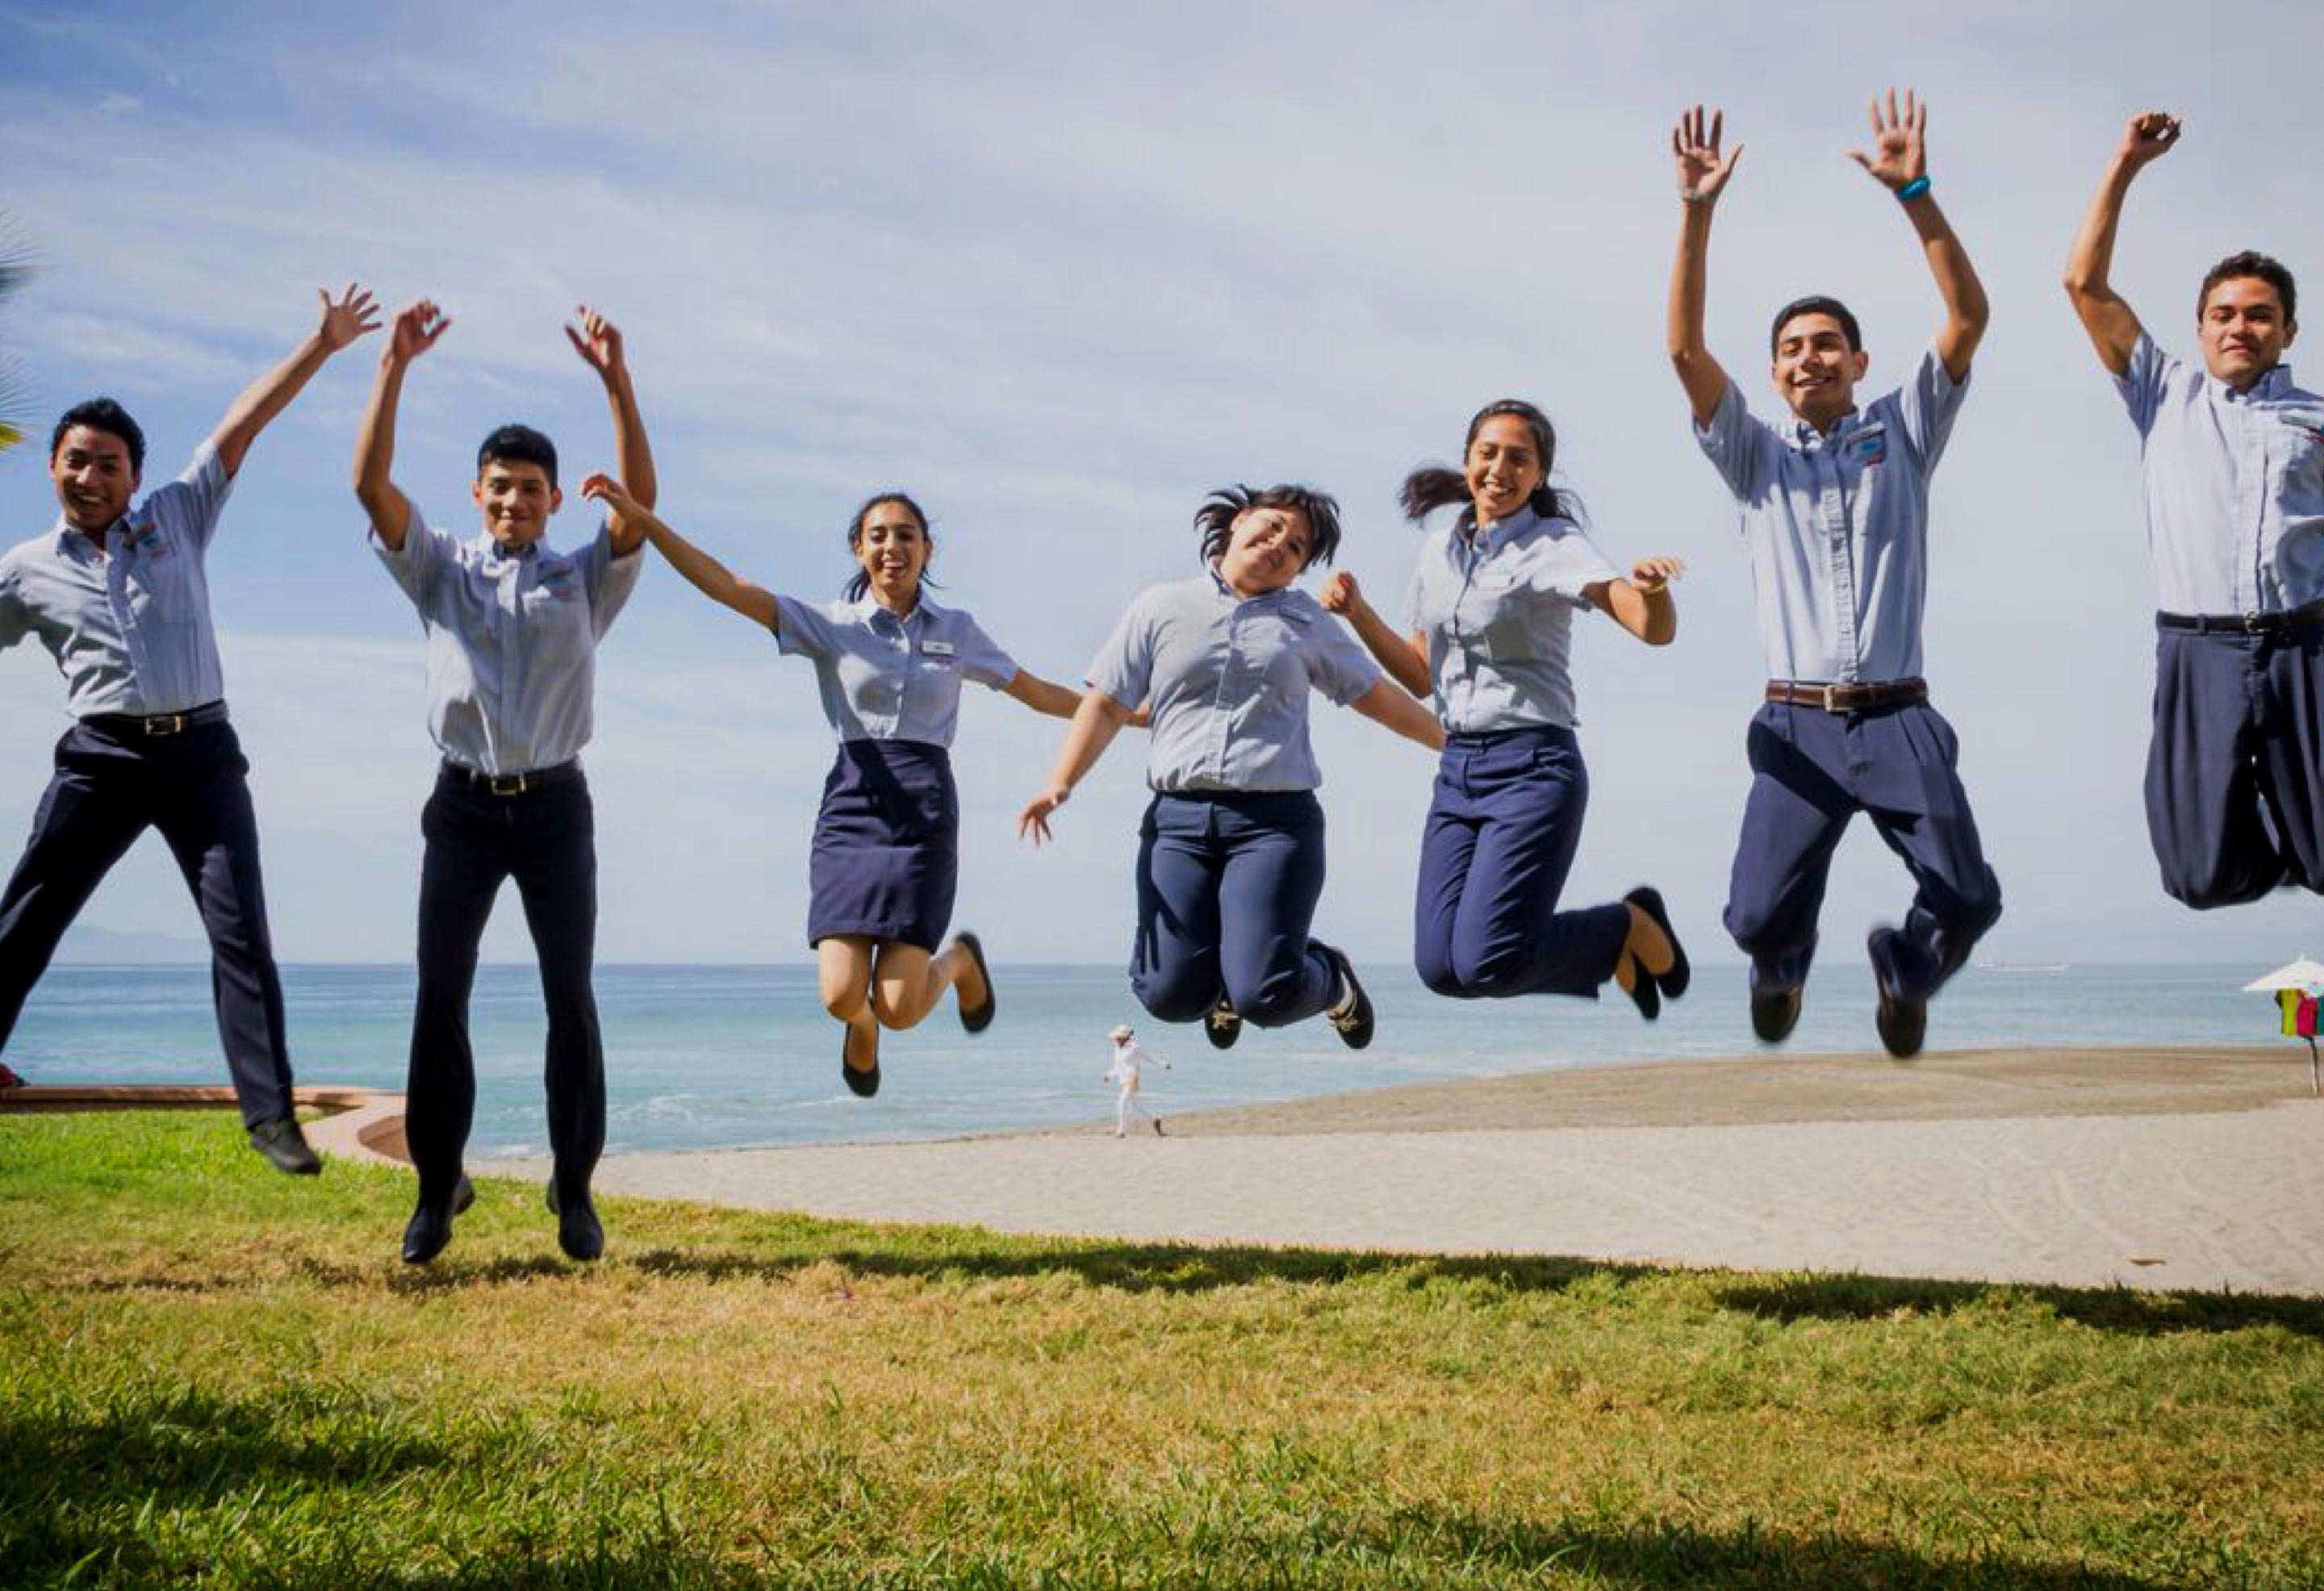 Employees jumping up in unison